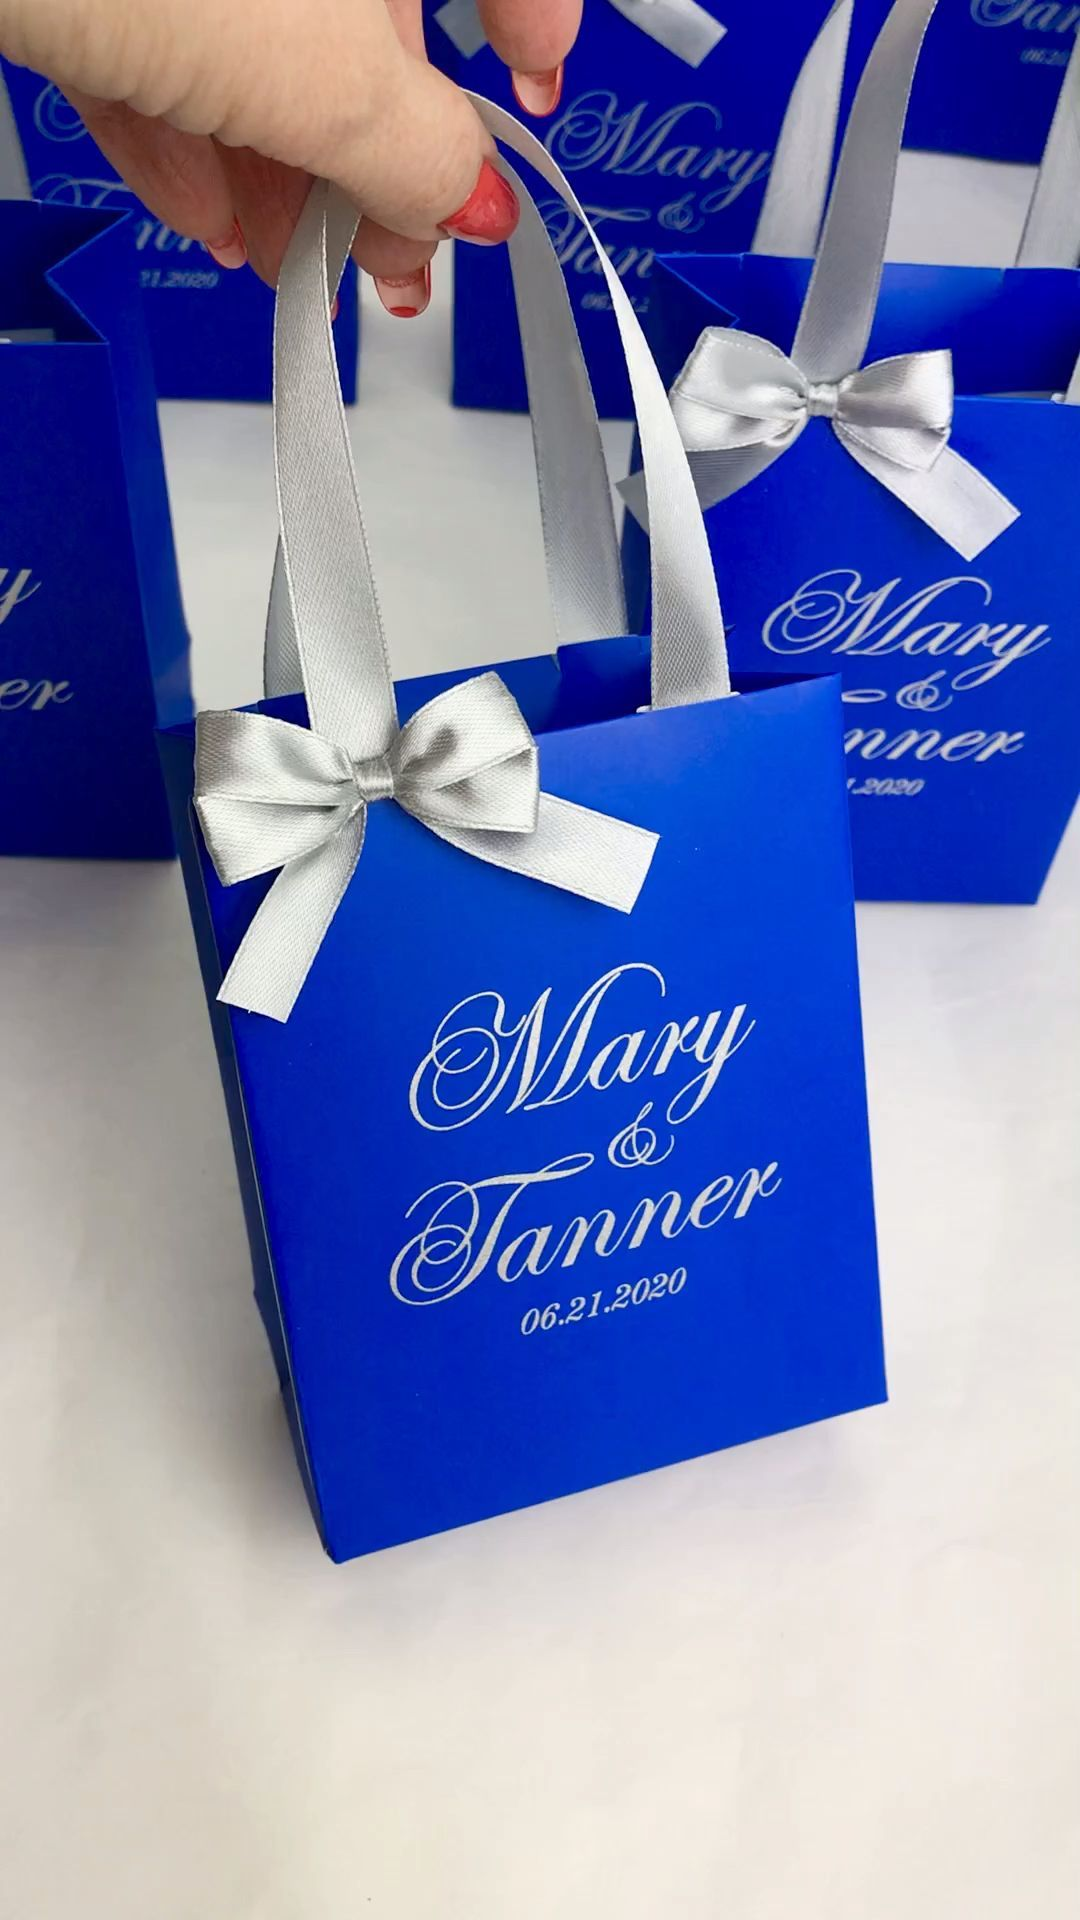 Royal blue & Silver wedding favor bags#bags #blue #favor #royal #silver #wedding